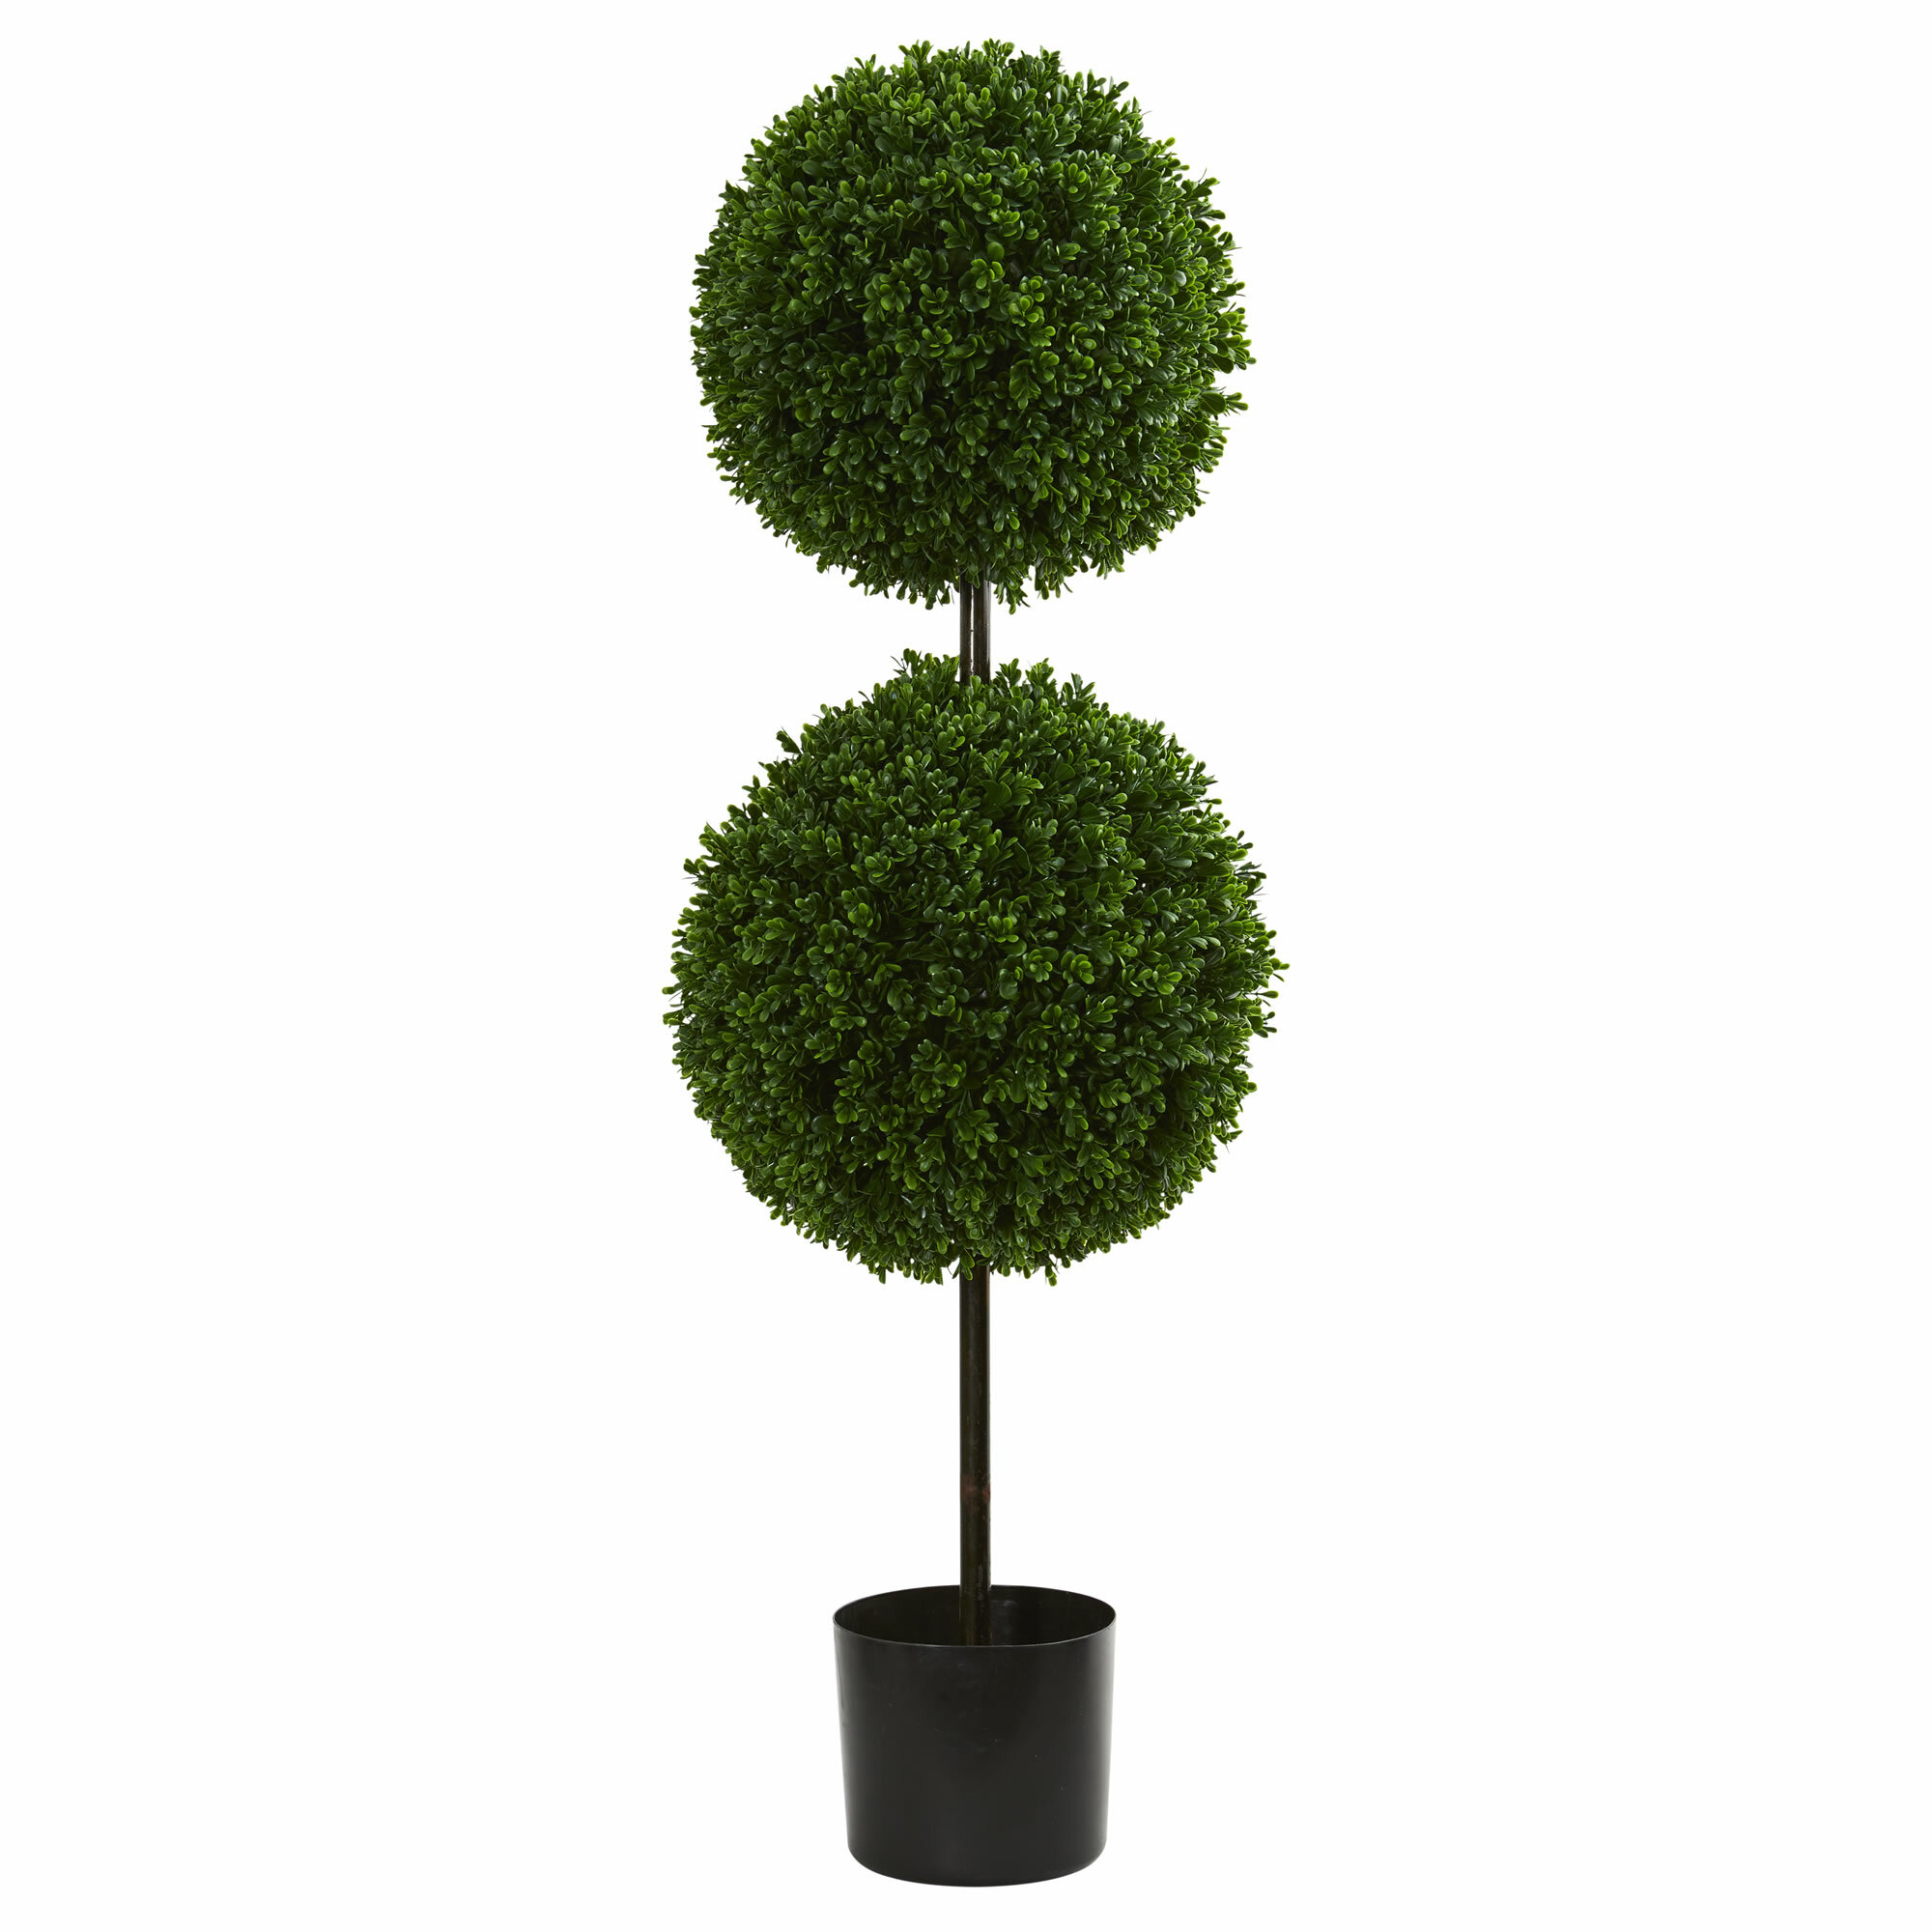 Double Ball Boxwood Topiary In Planter Reviews Joss Main